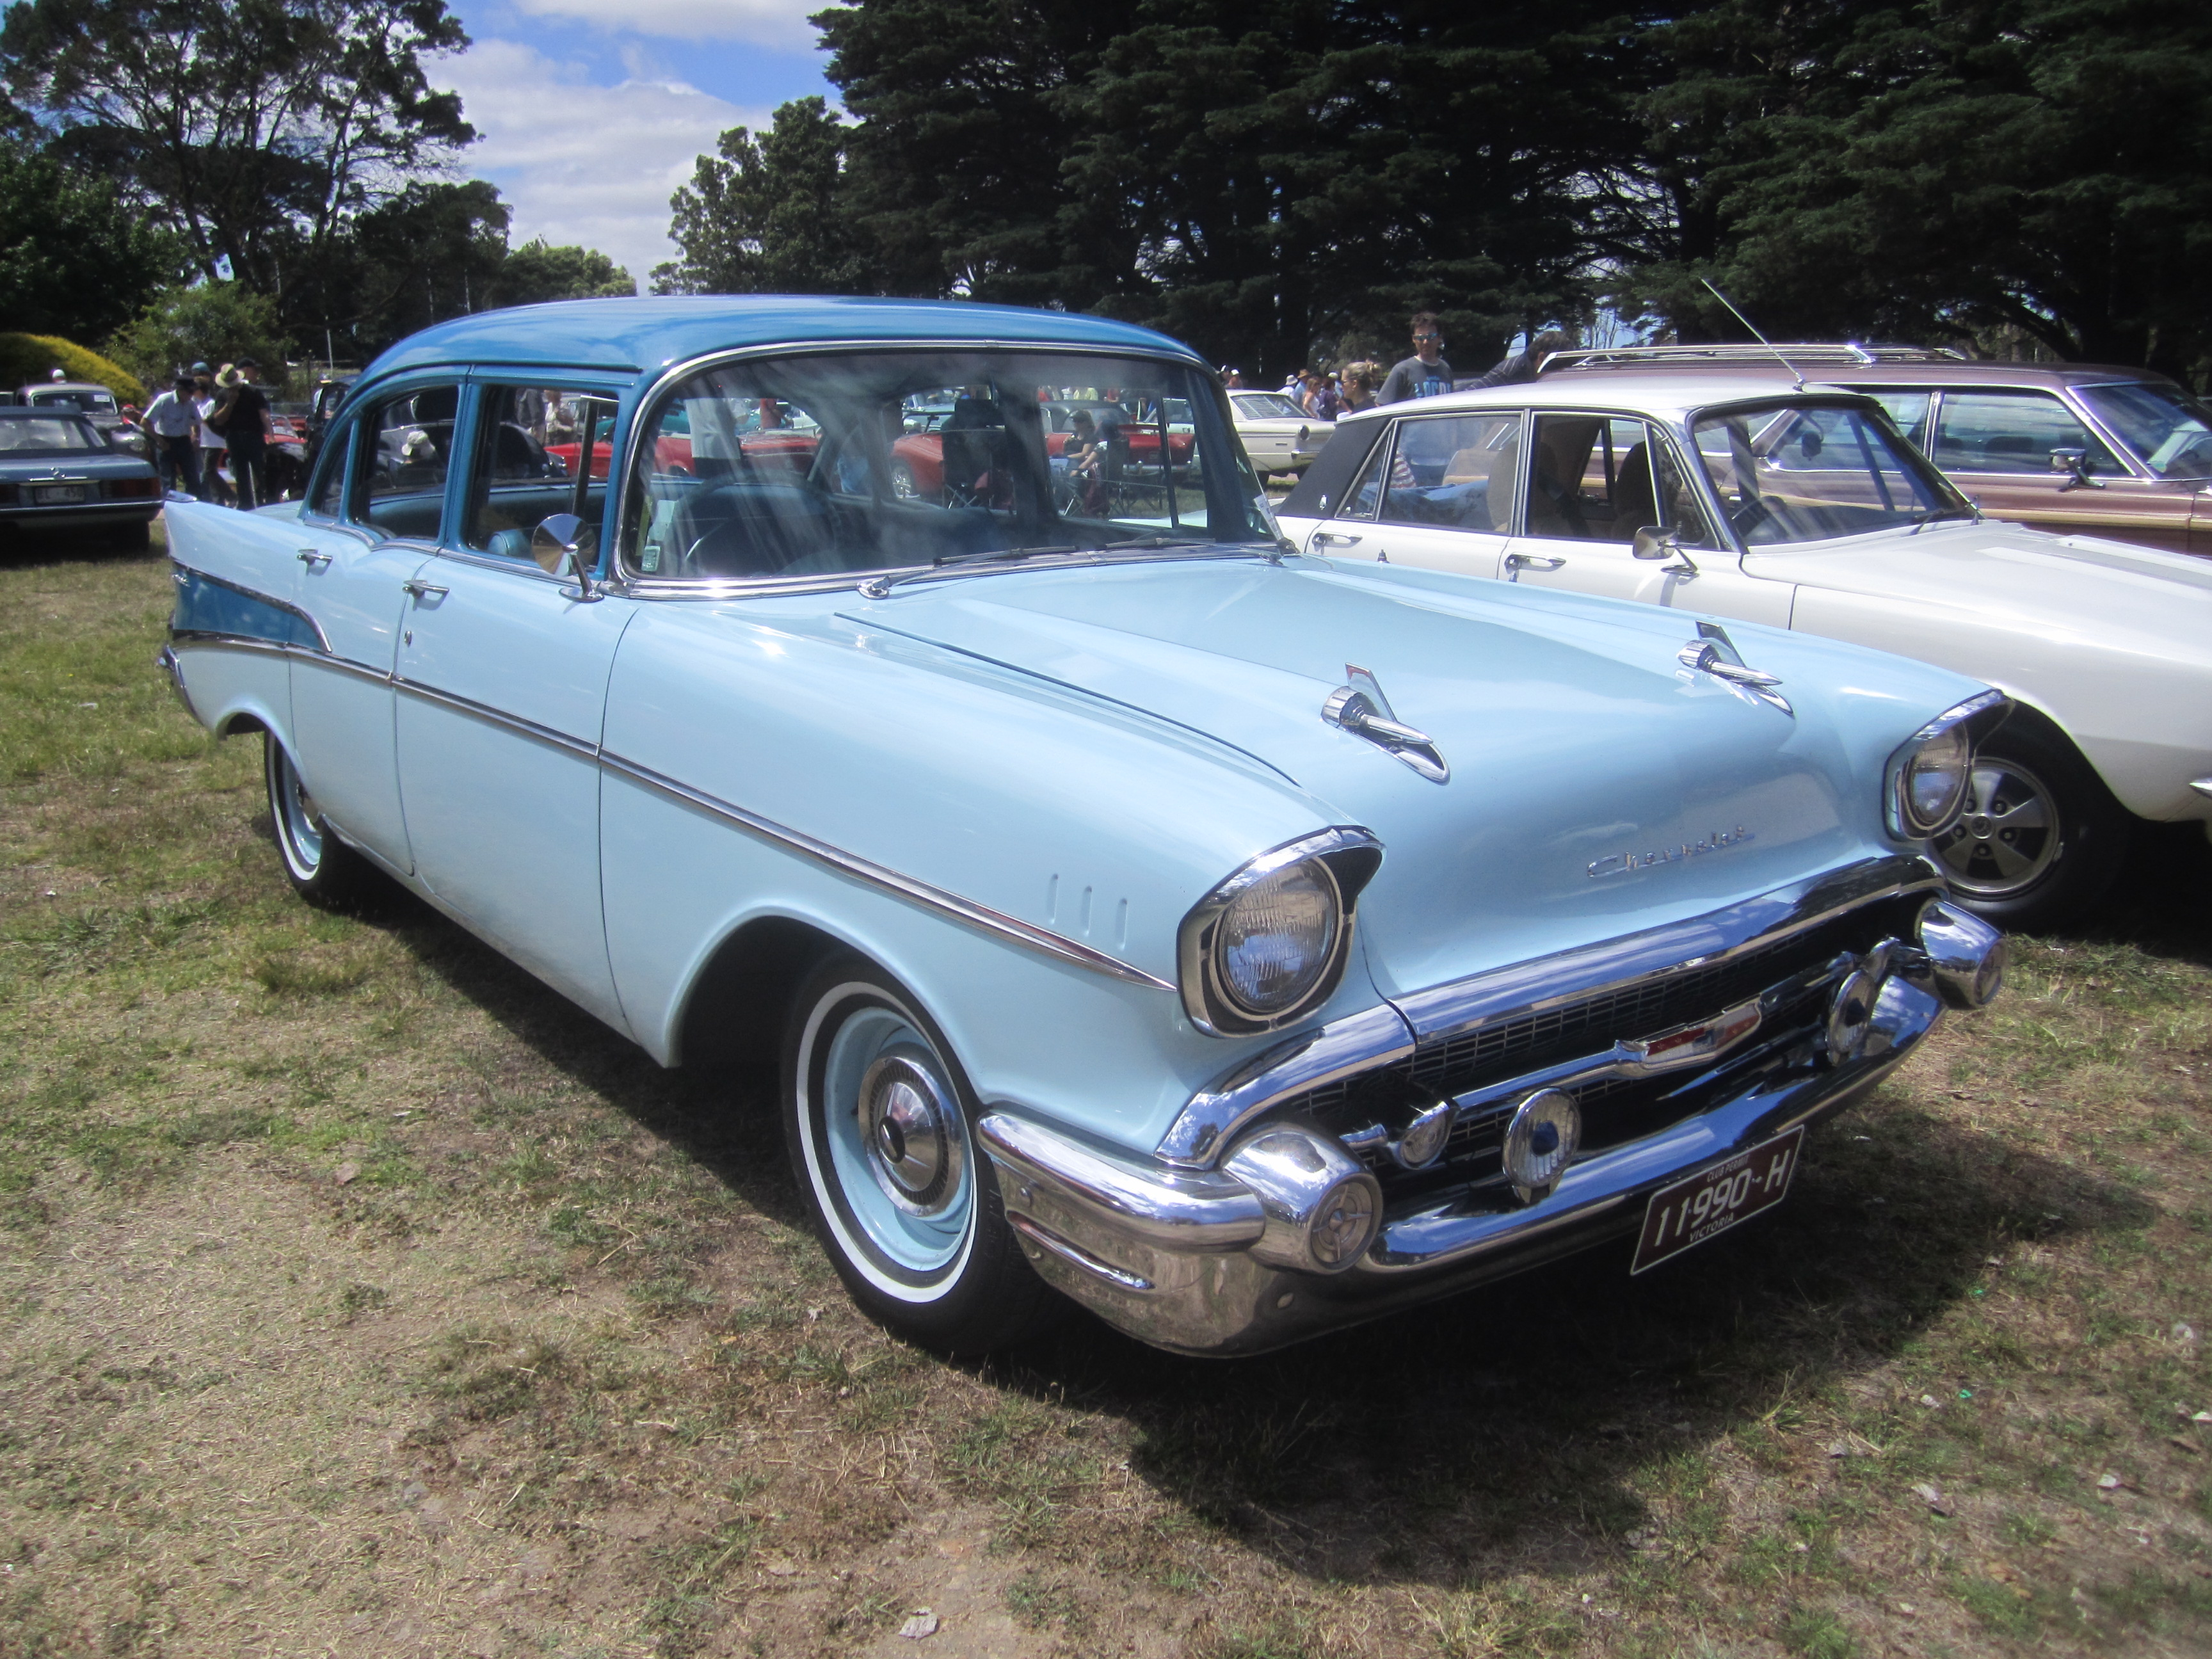 2 Door Convertible >> File:1957 Chevrolet 210 Sedan.jpg - Wikimedia Commons